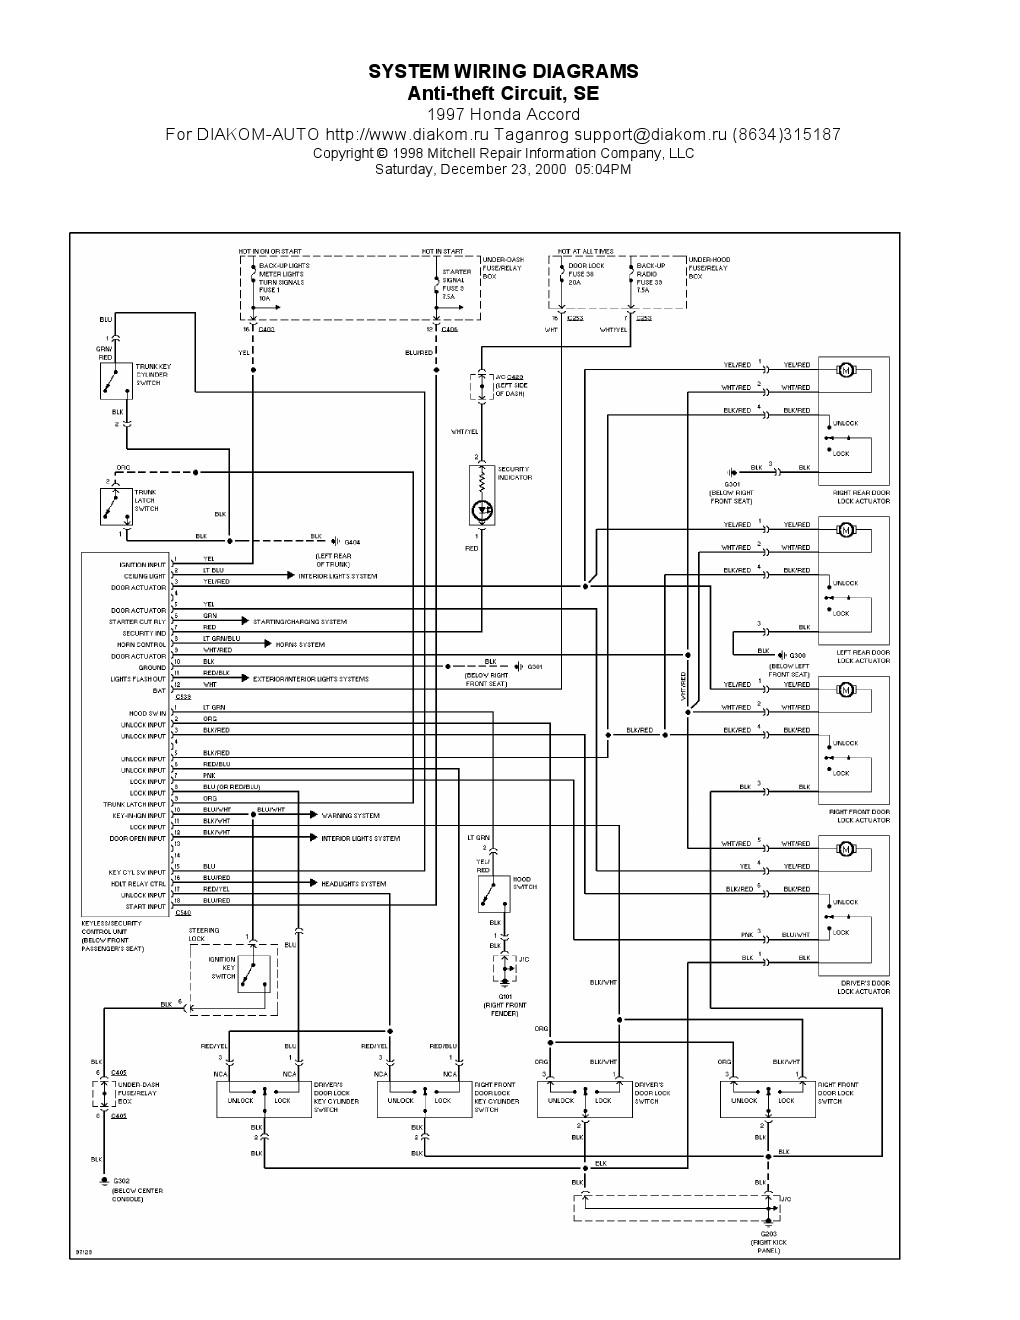 wrg 6251] 96 saturn fuse boxsaturn sc1 parts diagram saturn sc1 parts diagram \u2022 wiring diagram for free saturn sc1 parts diagram 96 saturn fuse box